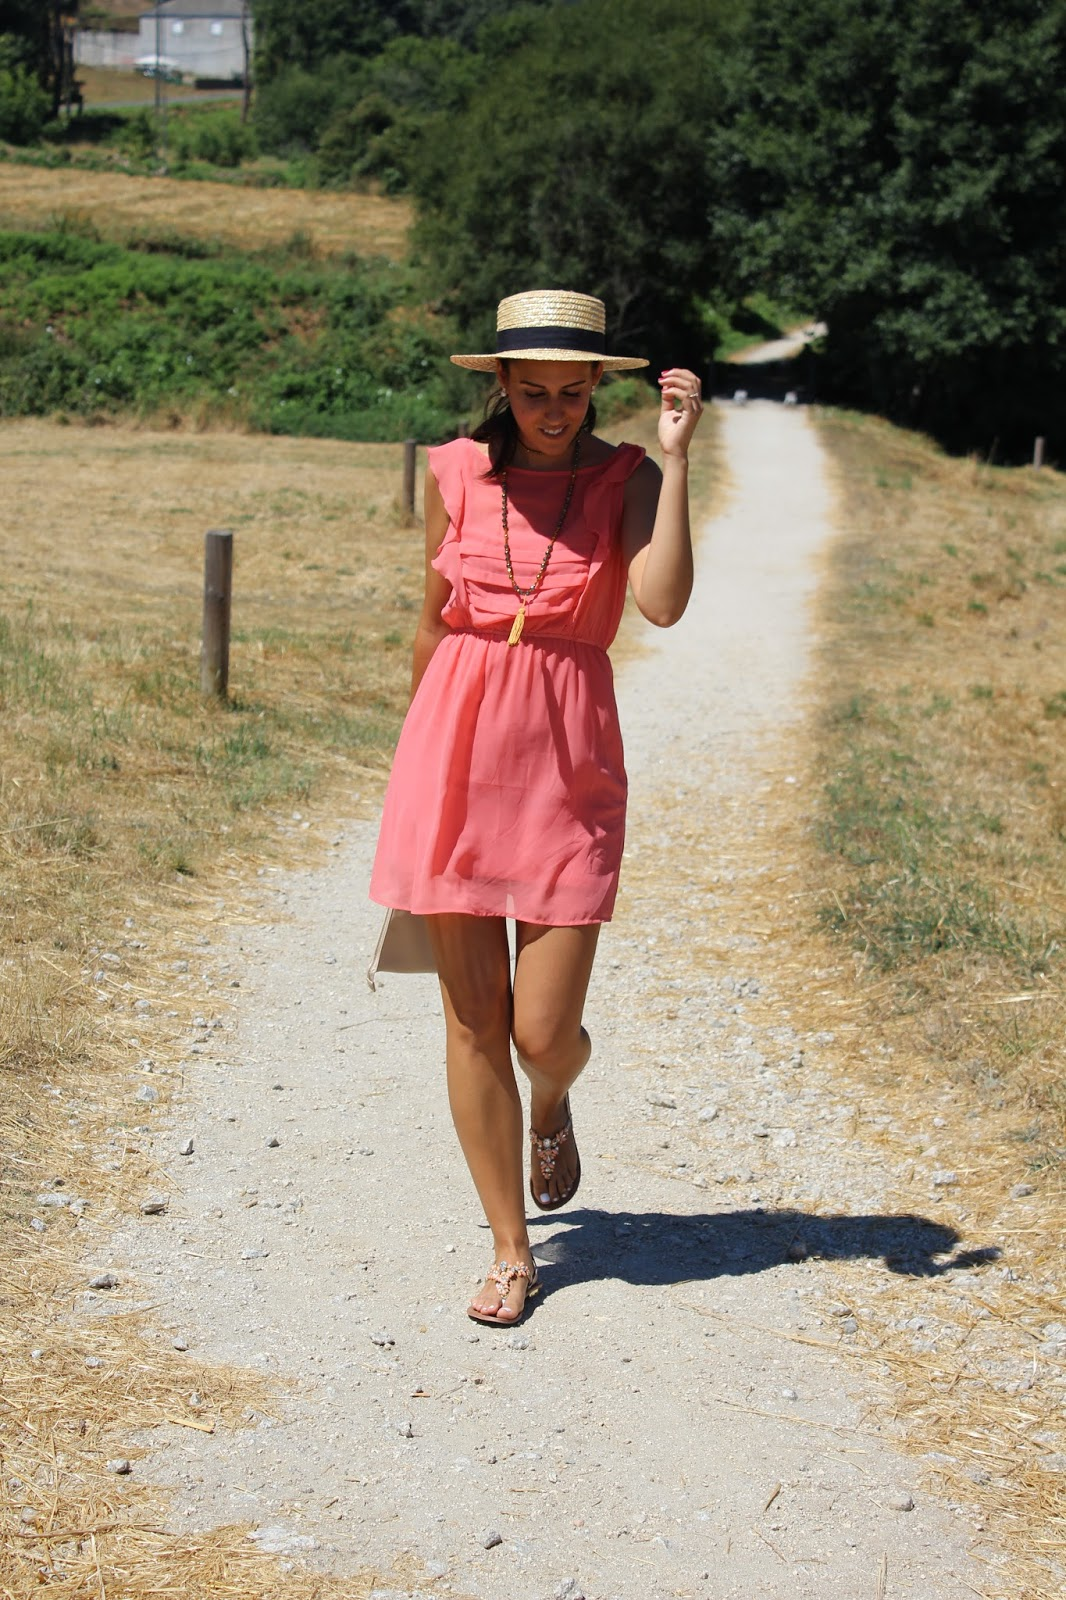 model-outfit-fashion-trendy-vestido-ropa-coral-modelo-chica-shopping-outfit